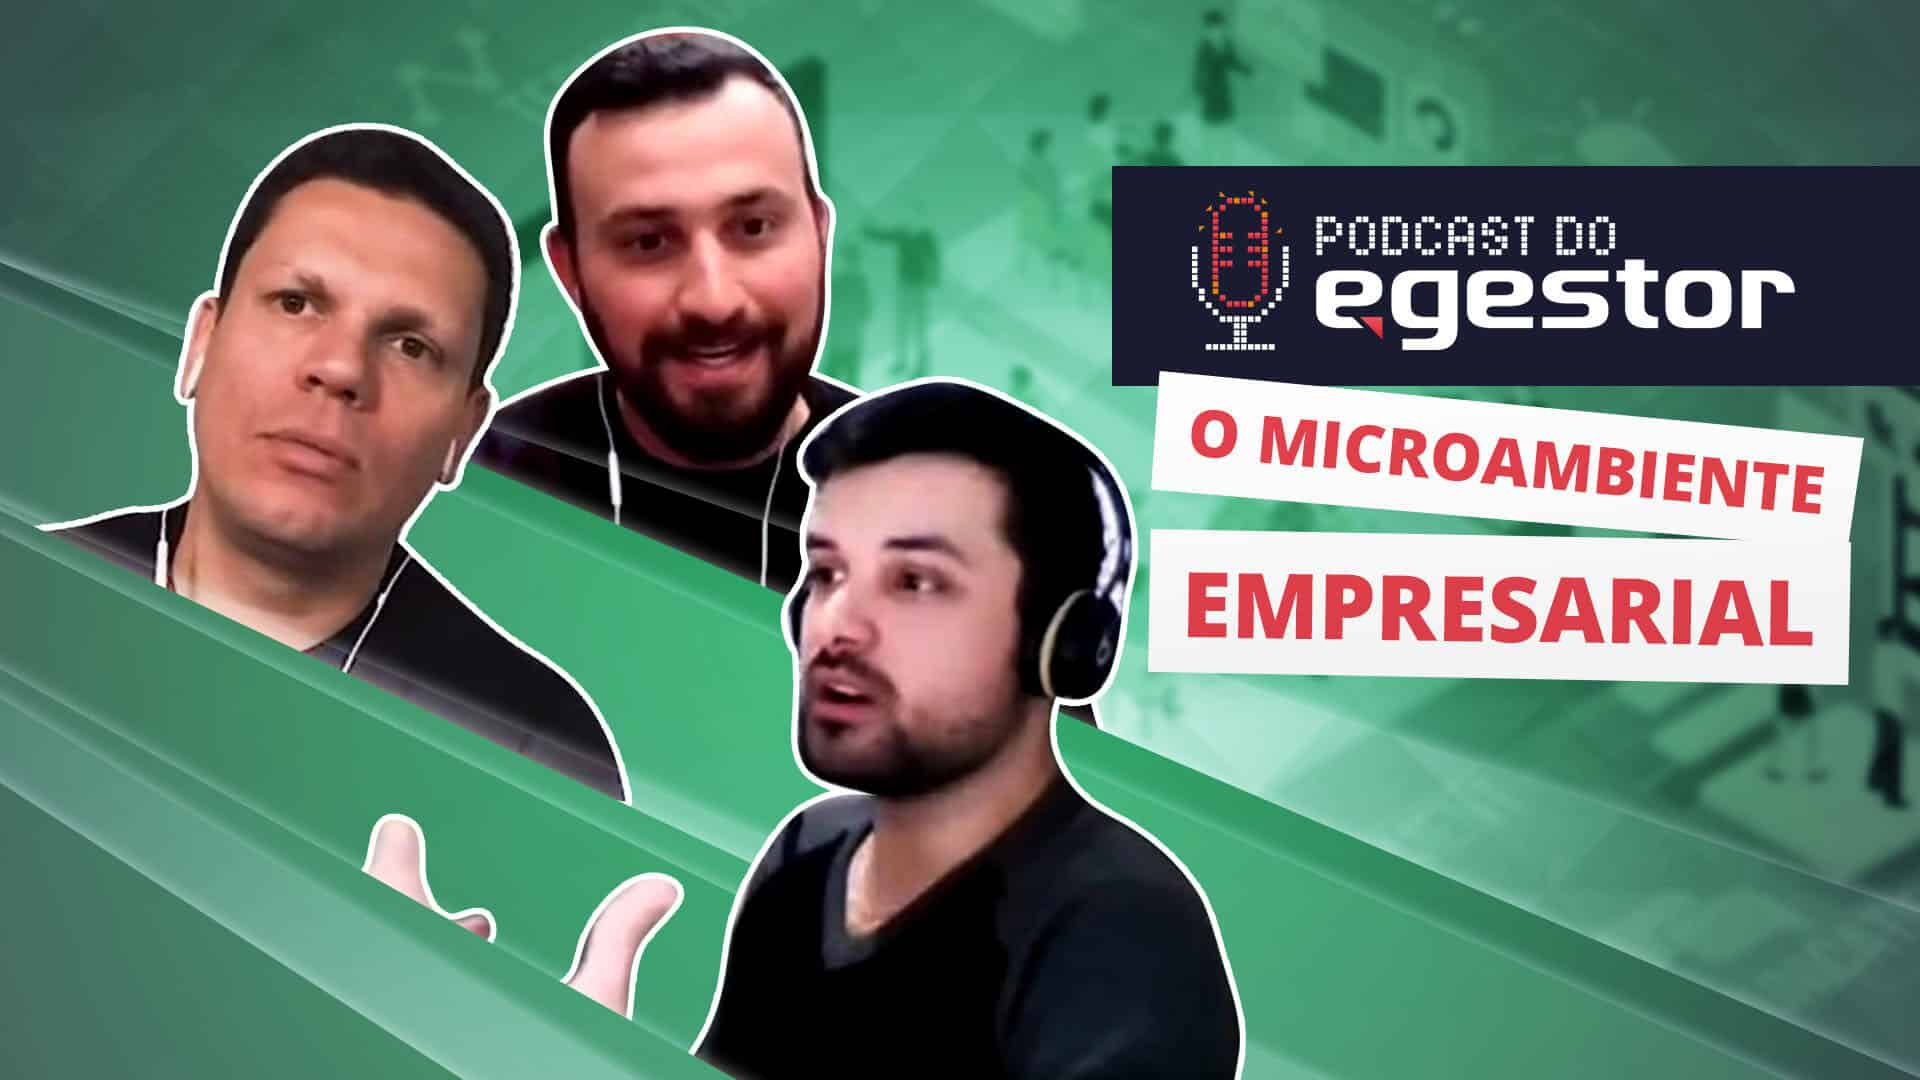 O microambiente empresarial - PodCast do eGestor